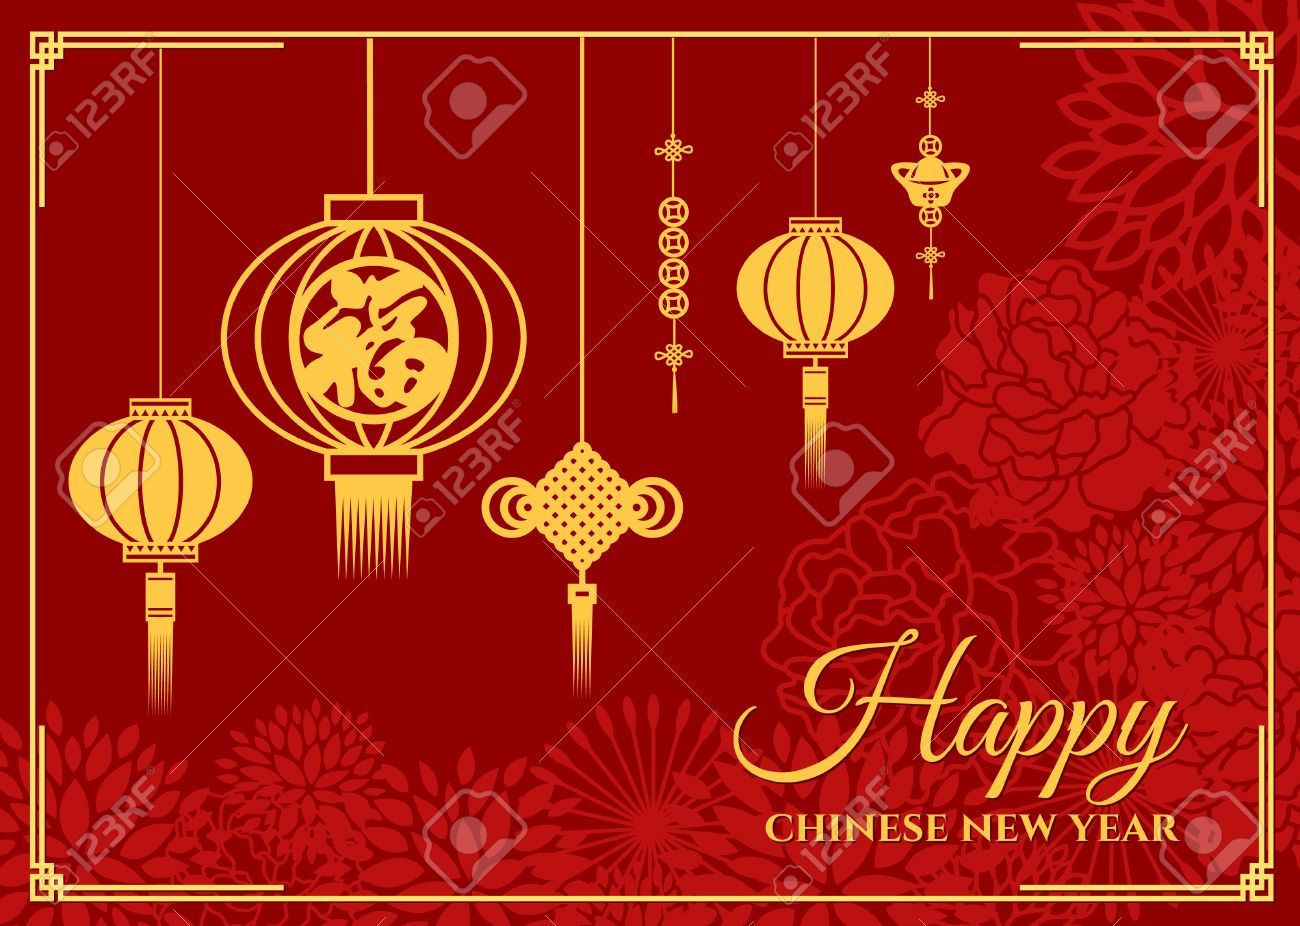 Happy chinese new year card is chinese word mean happiness happy chinese new year card is chinese word mean happiness in lanterns and china knot kristyandbryce Choice Image